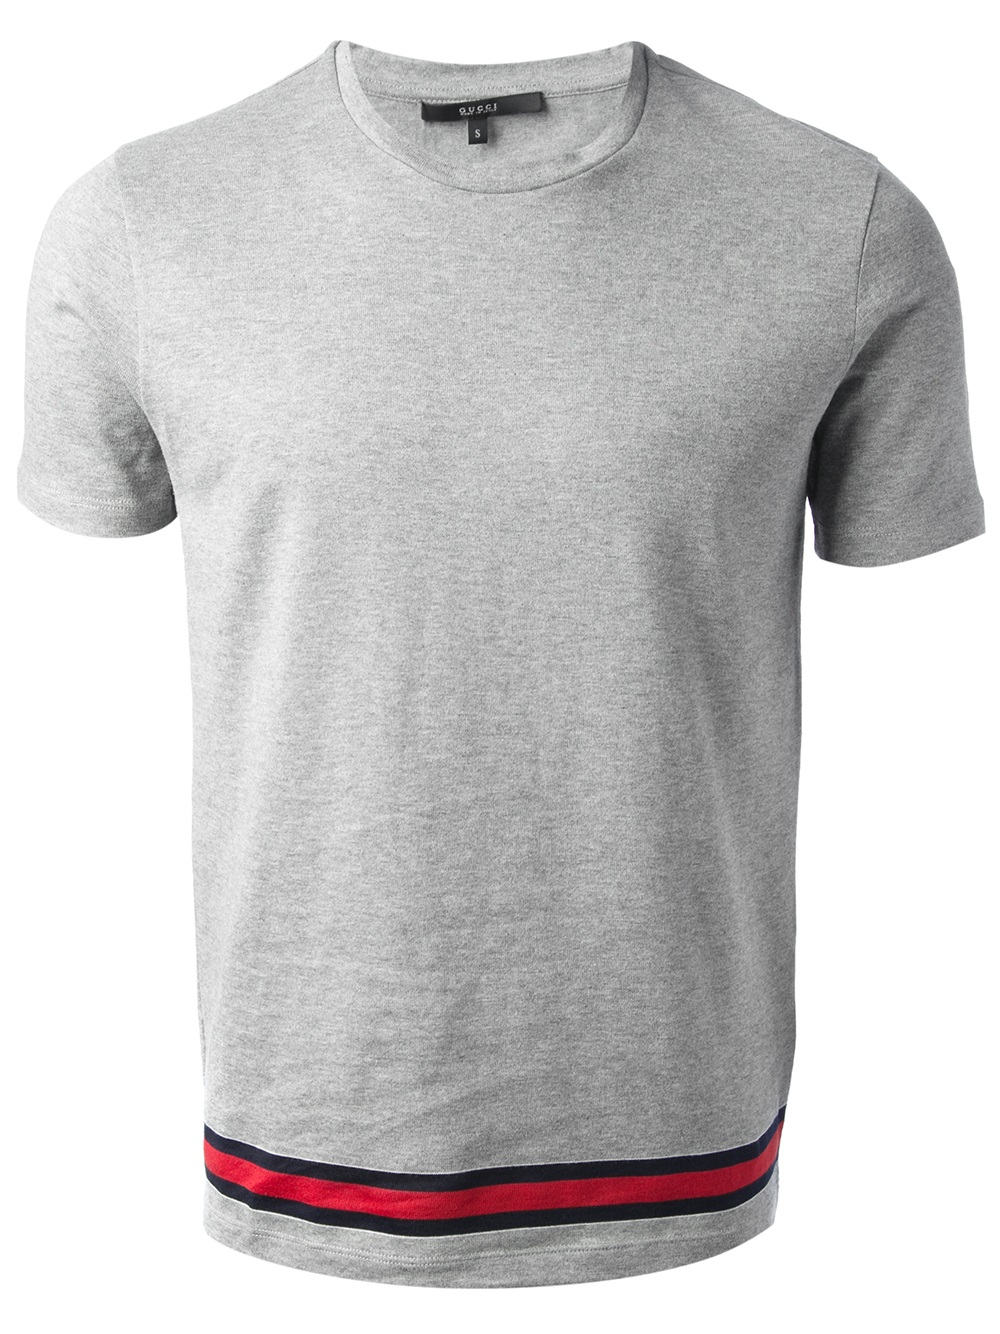 dae2a4688 Gucci Classic Tshirt in Gray for Men - Lyst